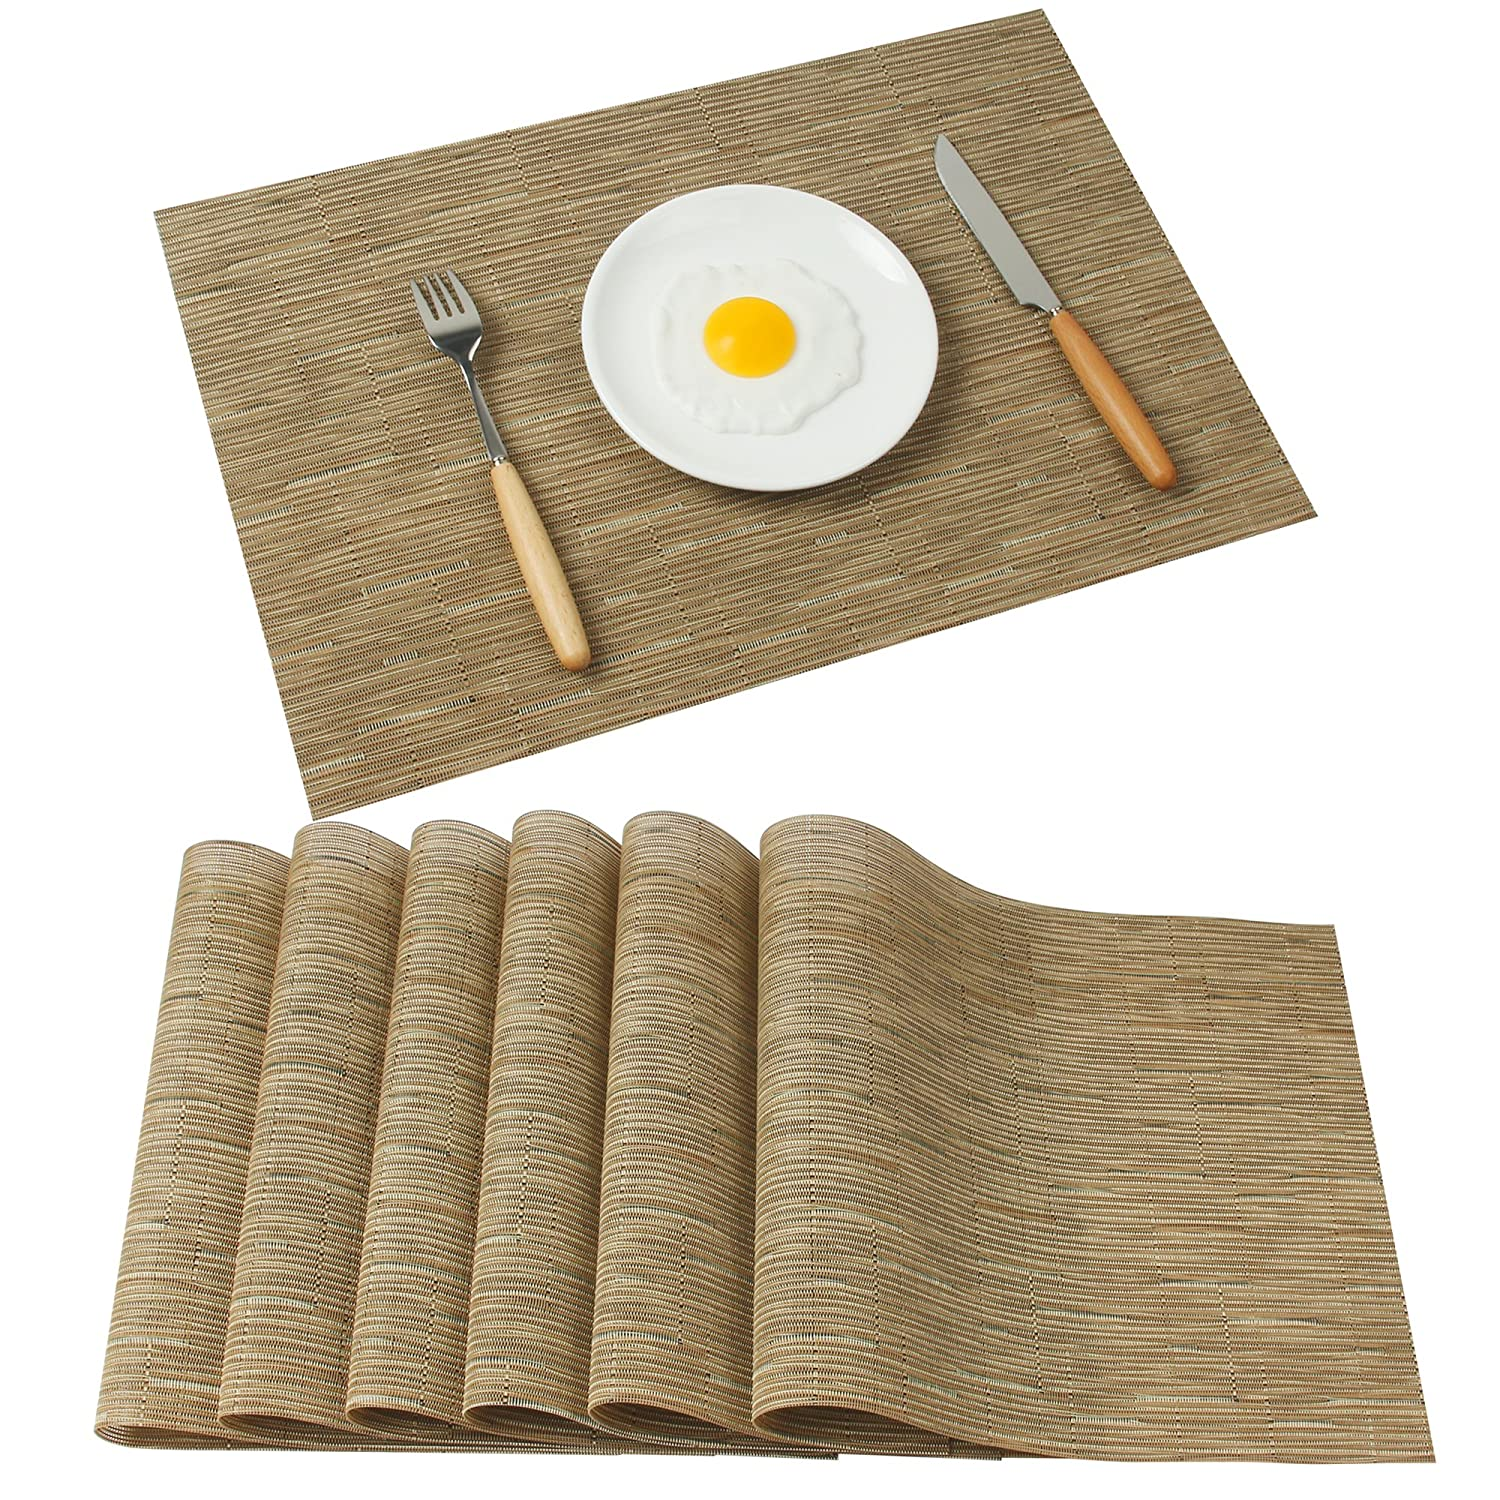 Famibay Bamboo PVC Weave Placemats Non-slip Kitchen Table Mats Set of 4-30x45 cm (Color 6) BZFAM-0010